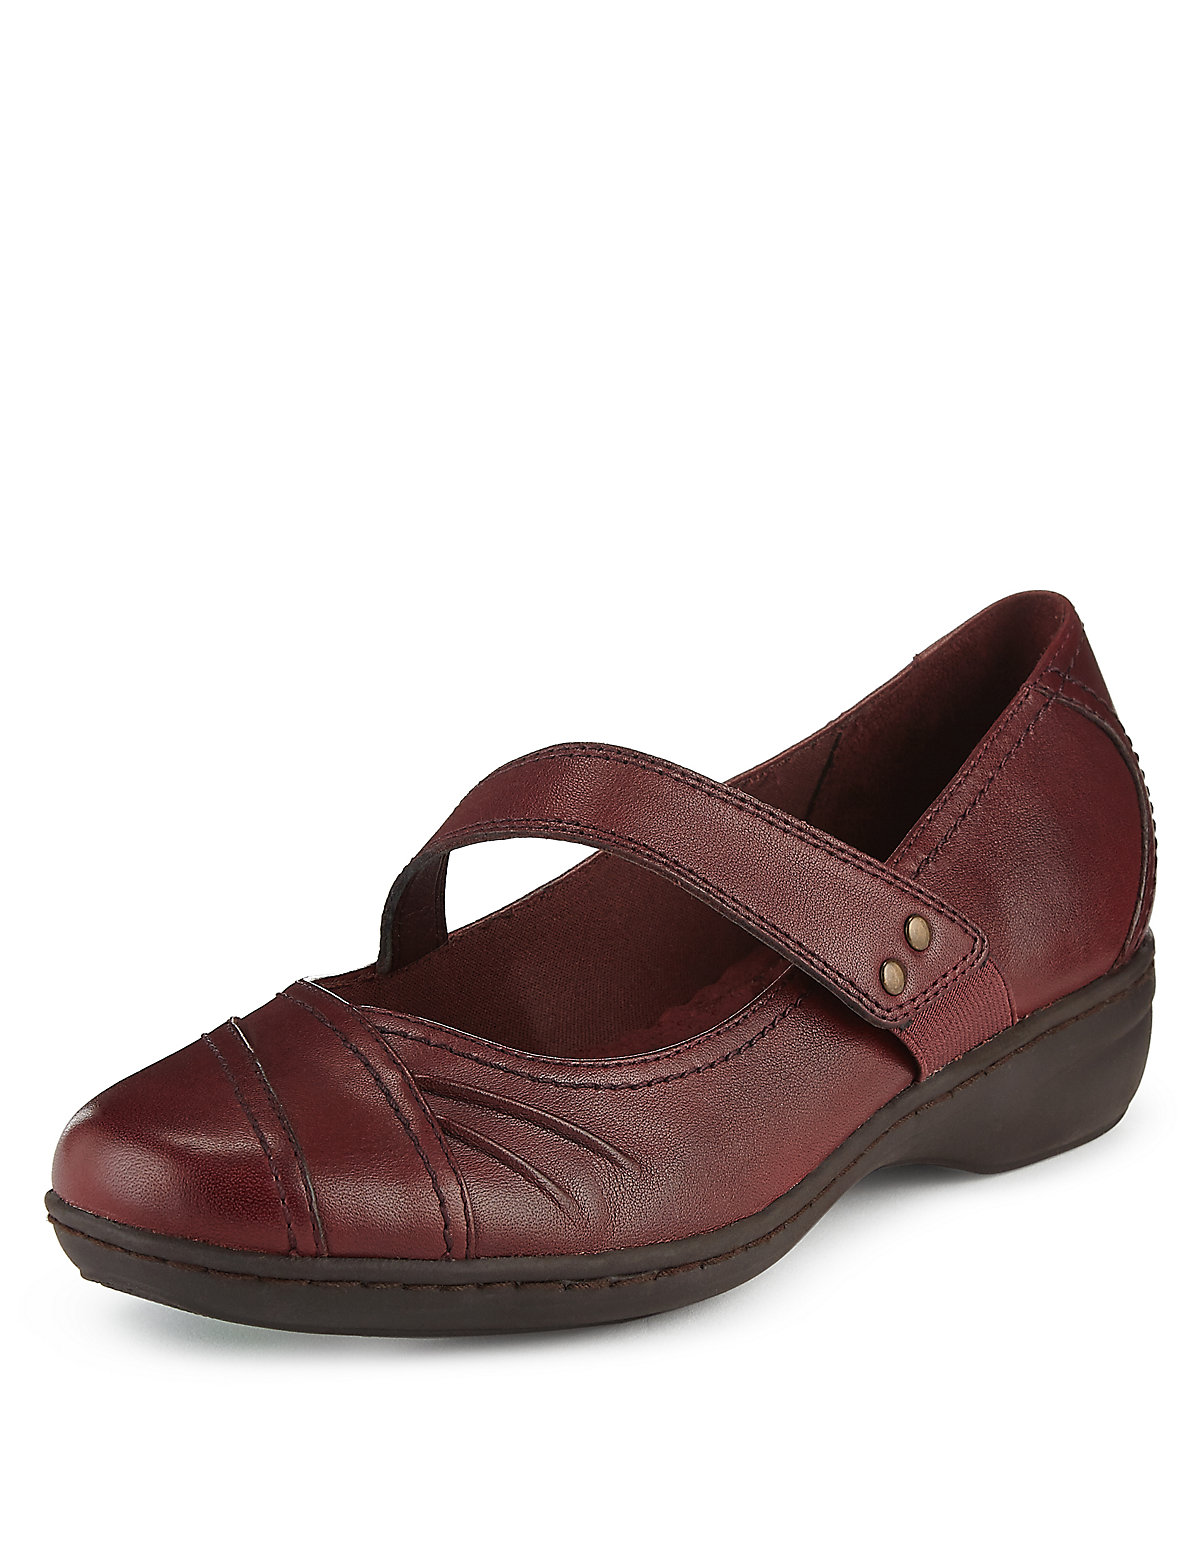 Buy Wide Fit Shoes for Ladies from our collection of shoes, sandals, boots and slippers. We have wide shoe specialist to help you find the perfect pair.